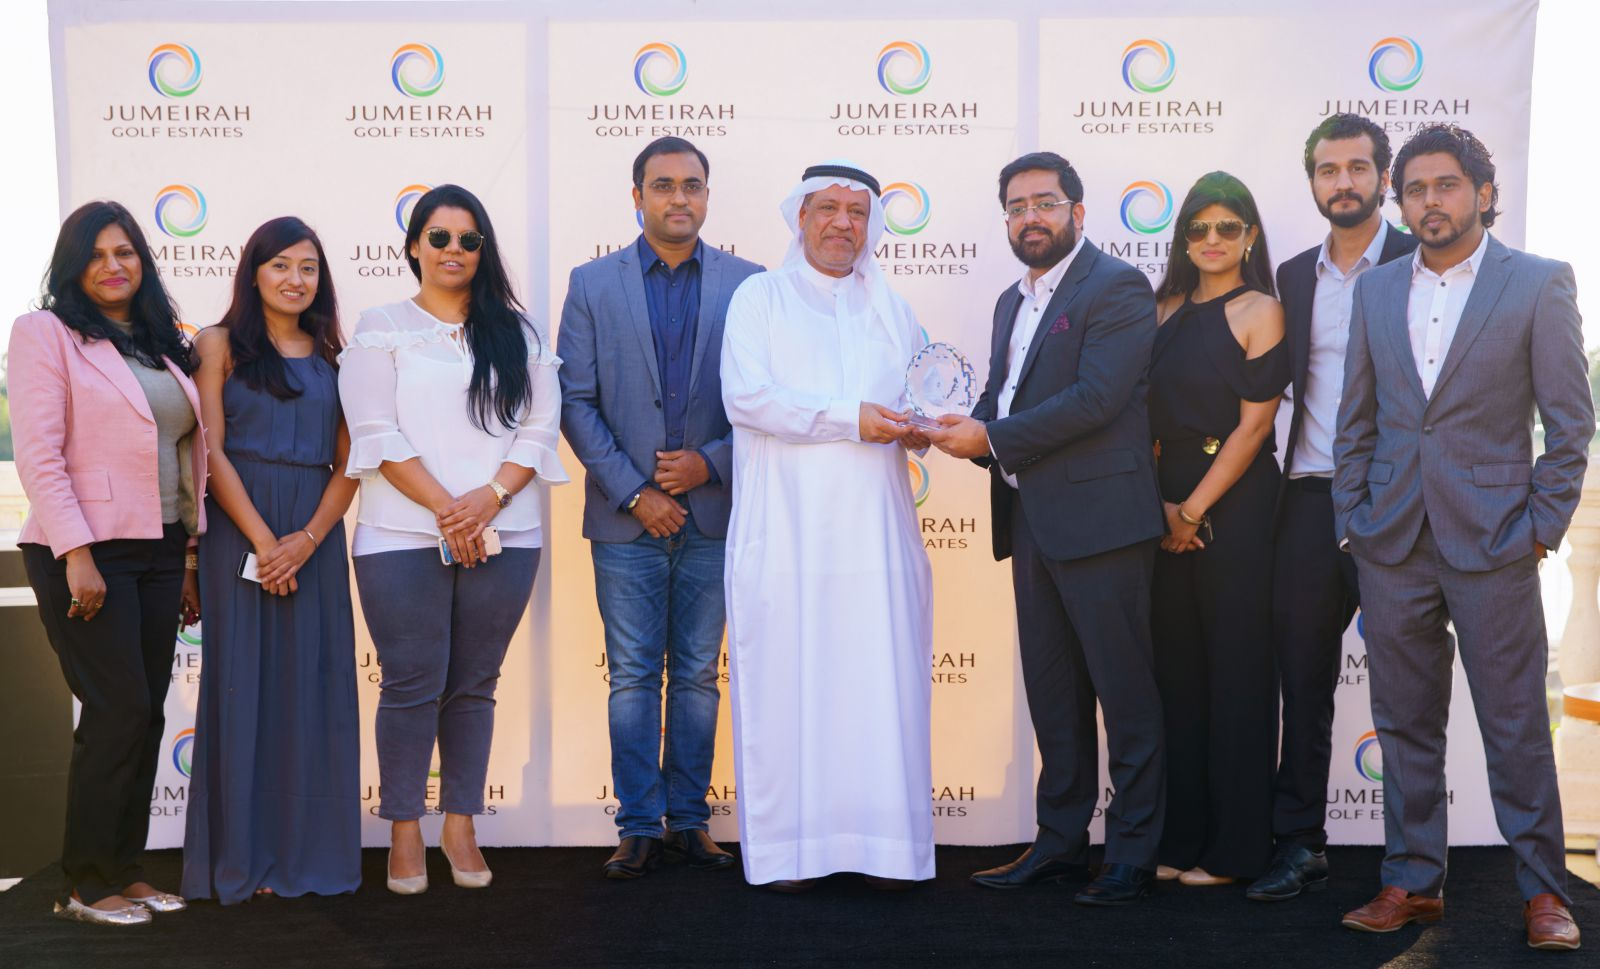 Jumeirah Golf Estates Celebrates 40% Sales Increase in 2017 at Annual Brokers Awards Event